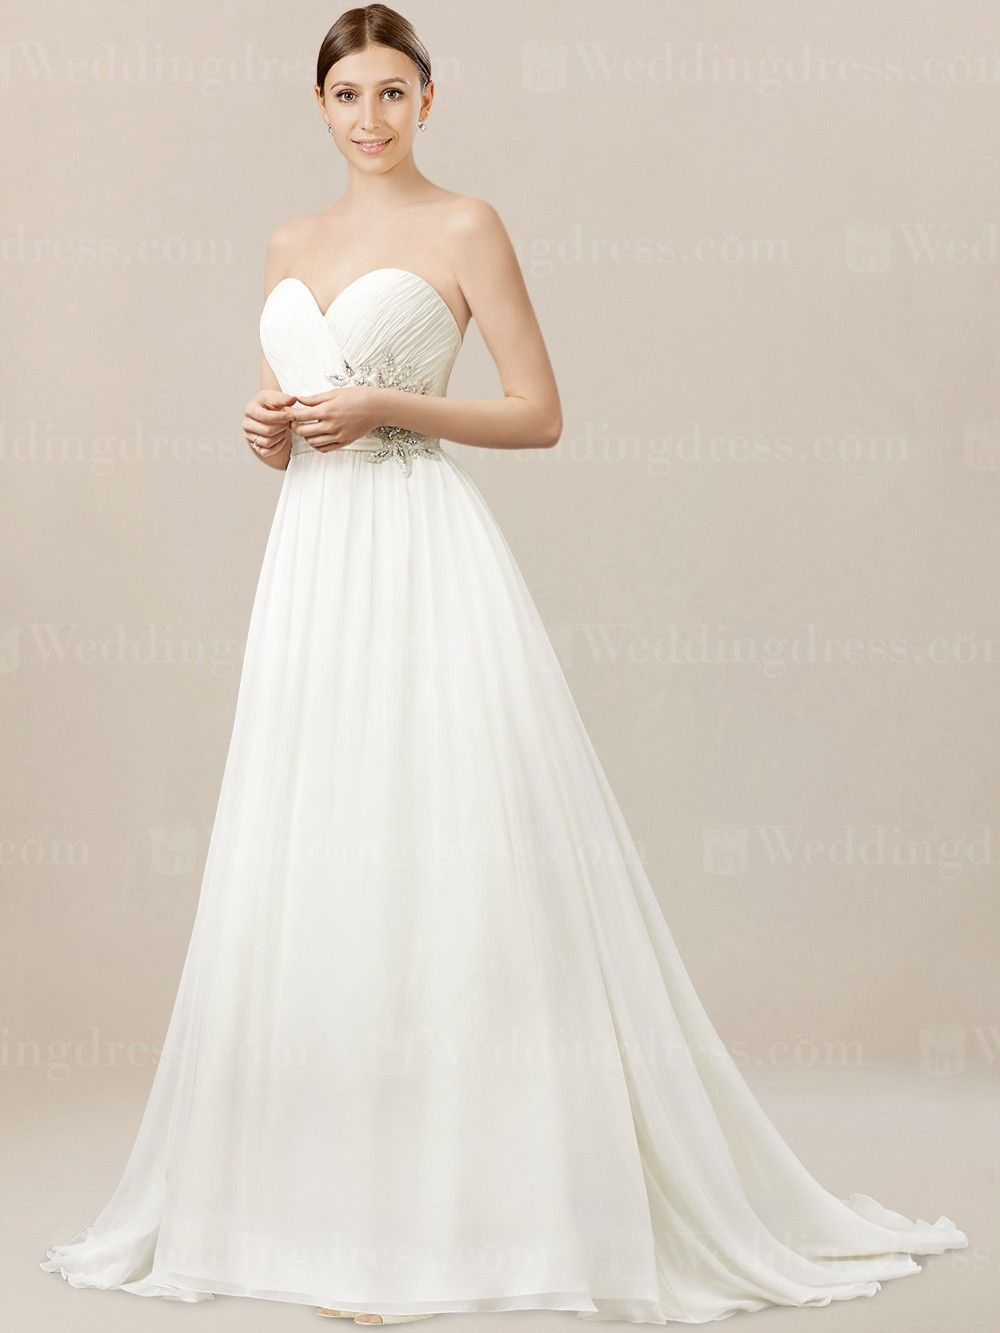 Corset Wedding Dress Is Made In Soft Chiffon Fabric Pleated